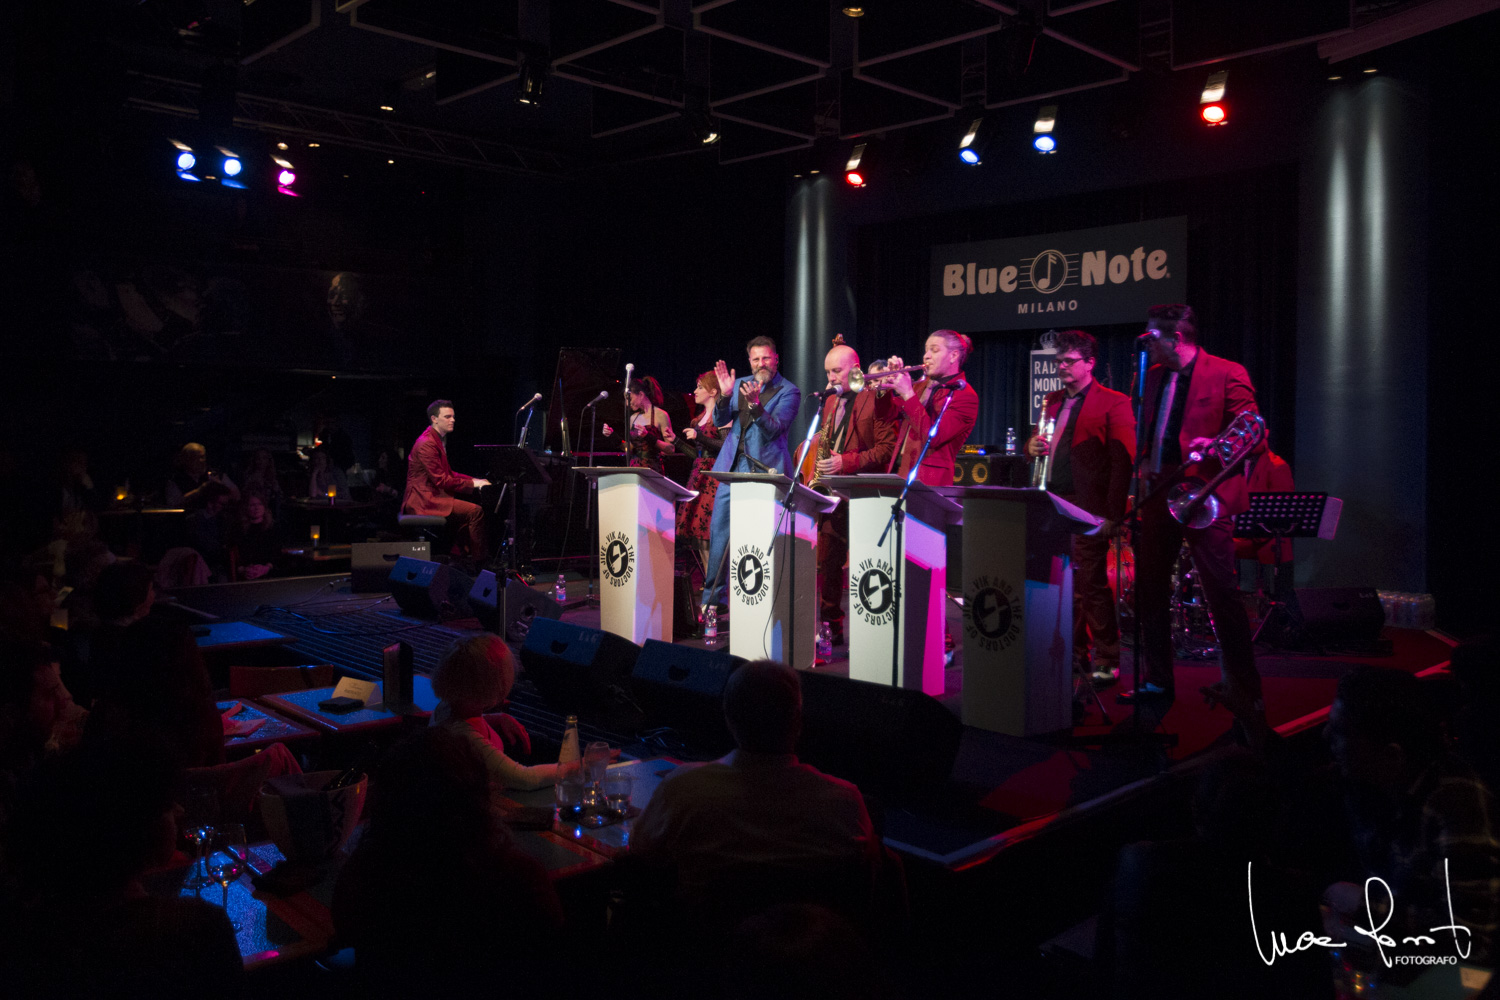 Luca Rossato</br>Vic And The Doctors Of Jive al Blue Note</br>Reportage